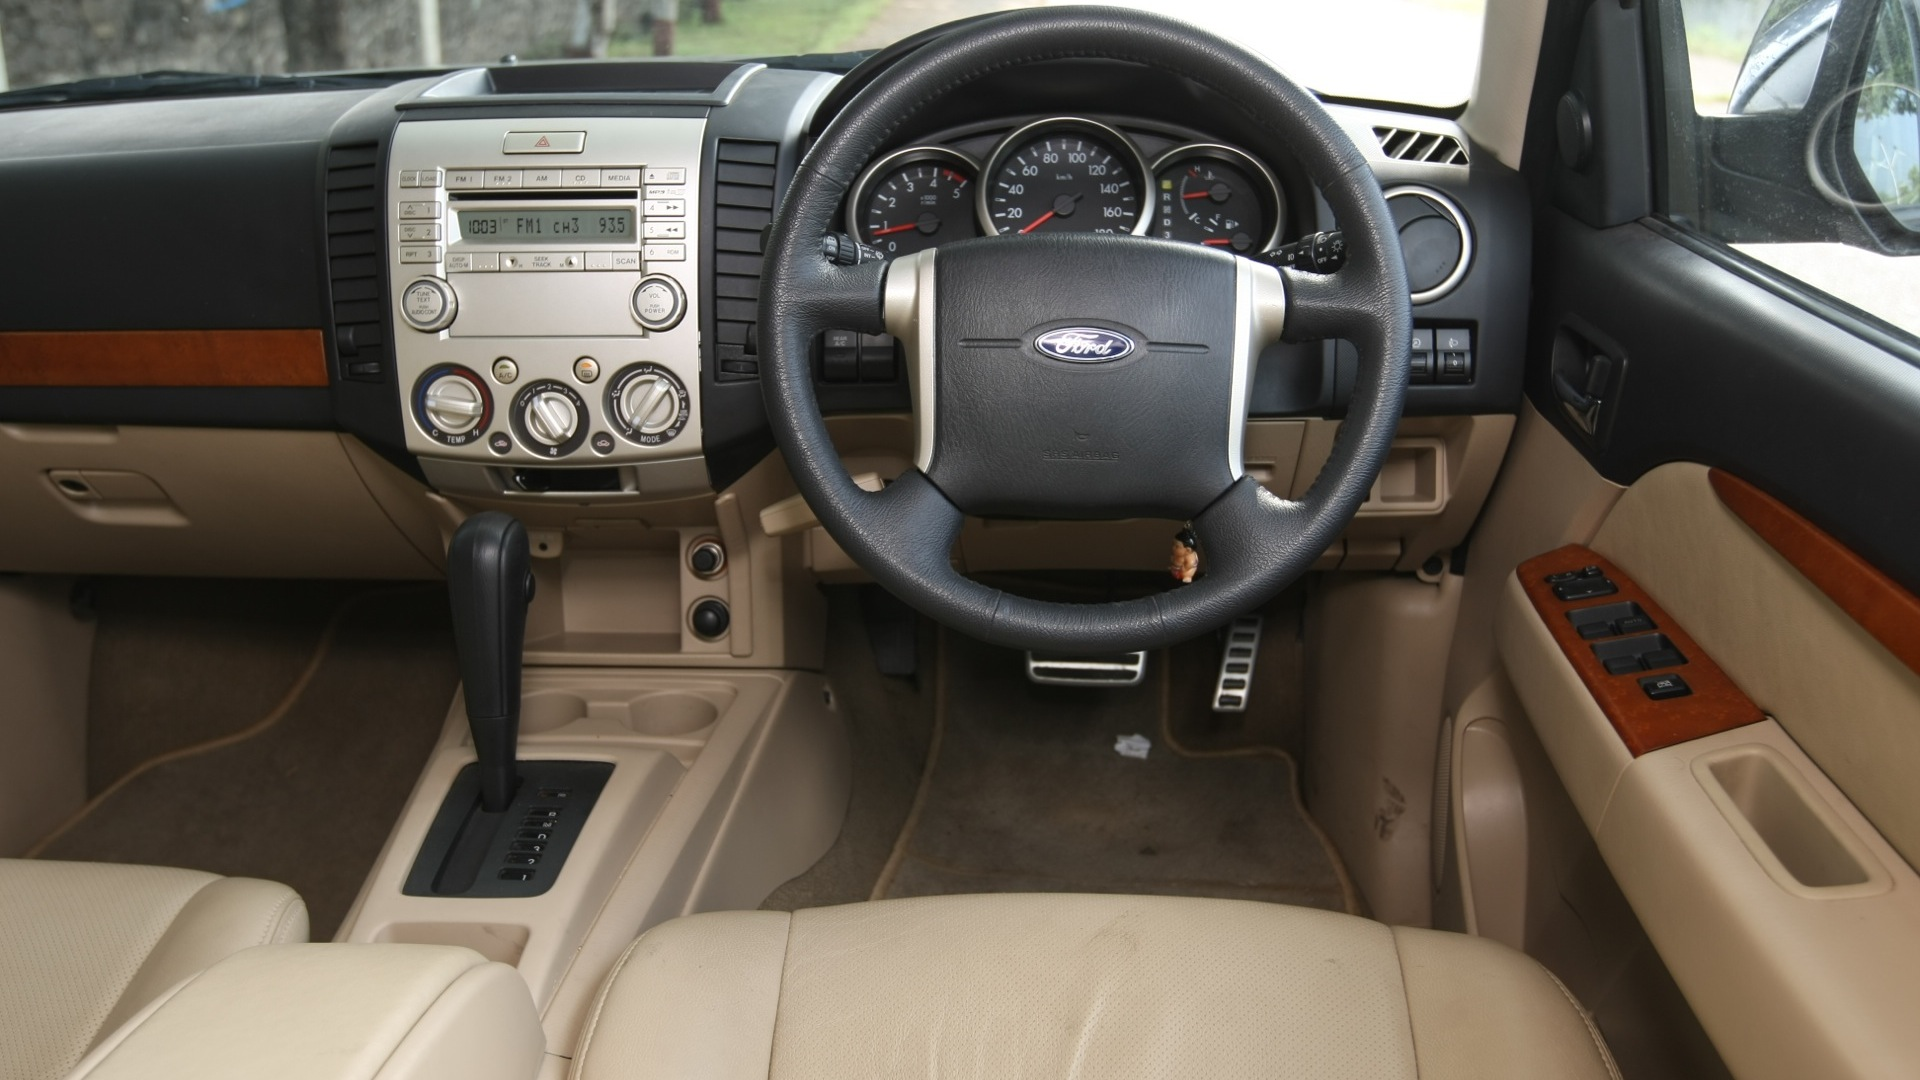 Ford Endeavour 2012 Tdci 4x2 2 5 Xlt Interior Car Photos